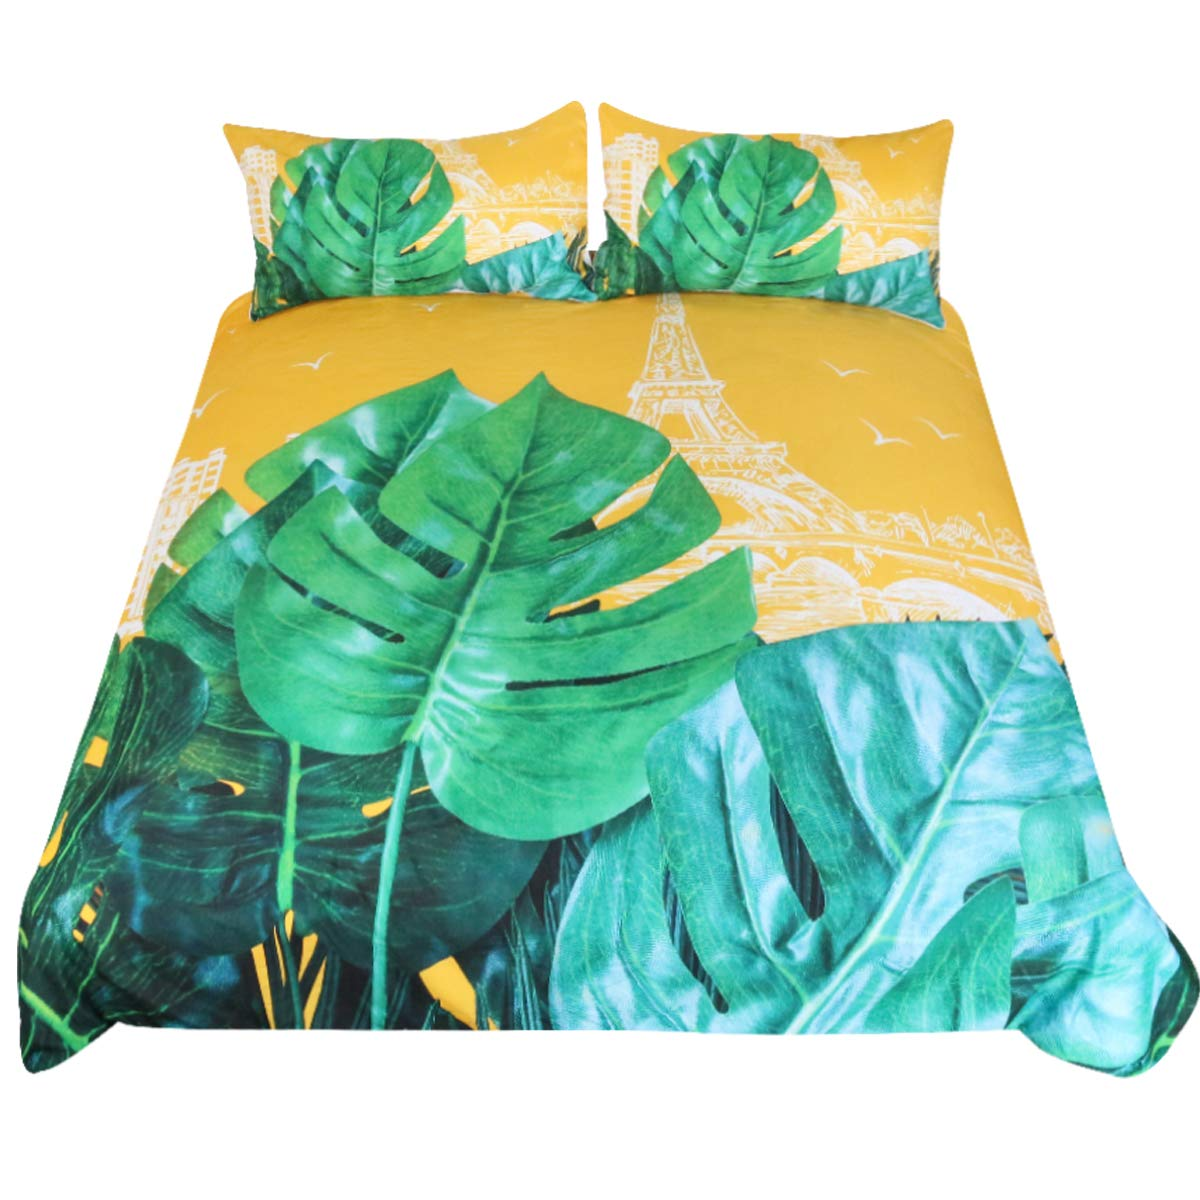 Sleepwish Yellow Green Bedspread 3 Piece Tropical Summer Plant Duvet Cover Paris Eiffel Tower Bedding Set King